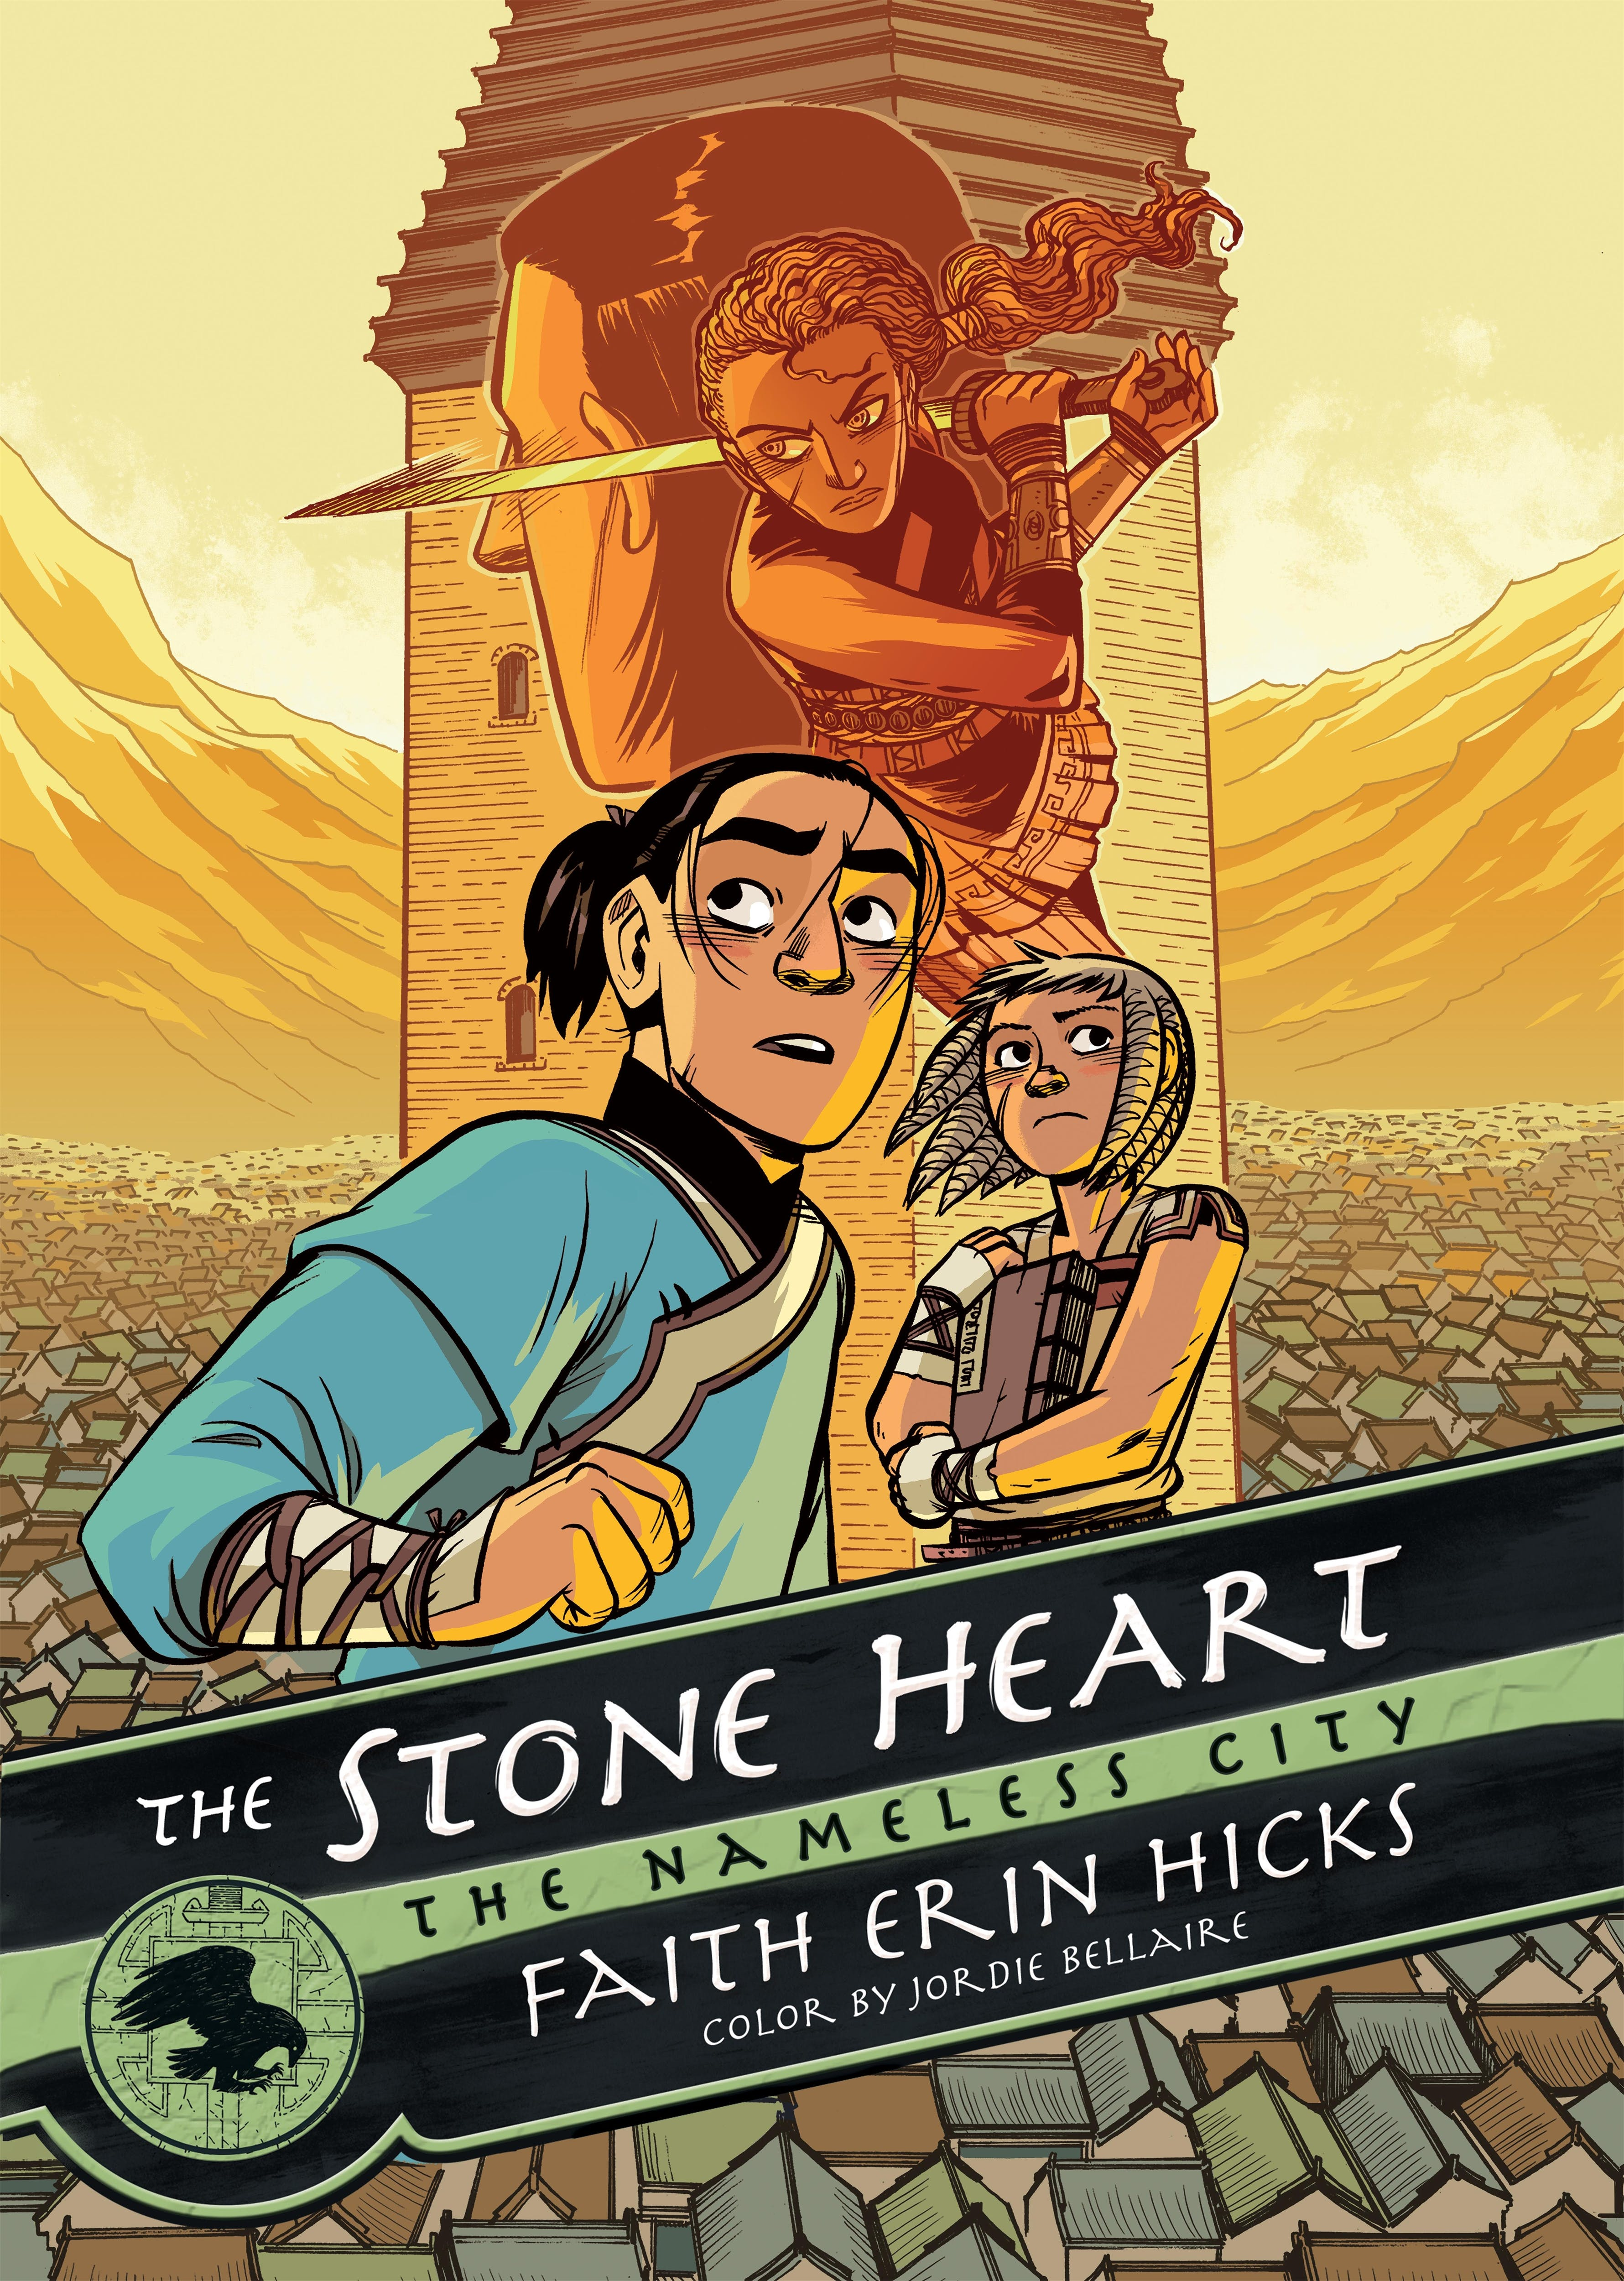 Image of The Nameless City: The Stone Heart